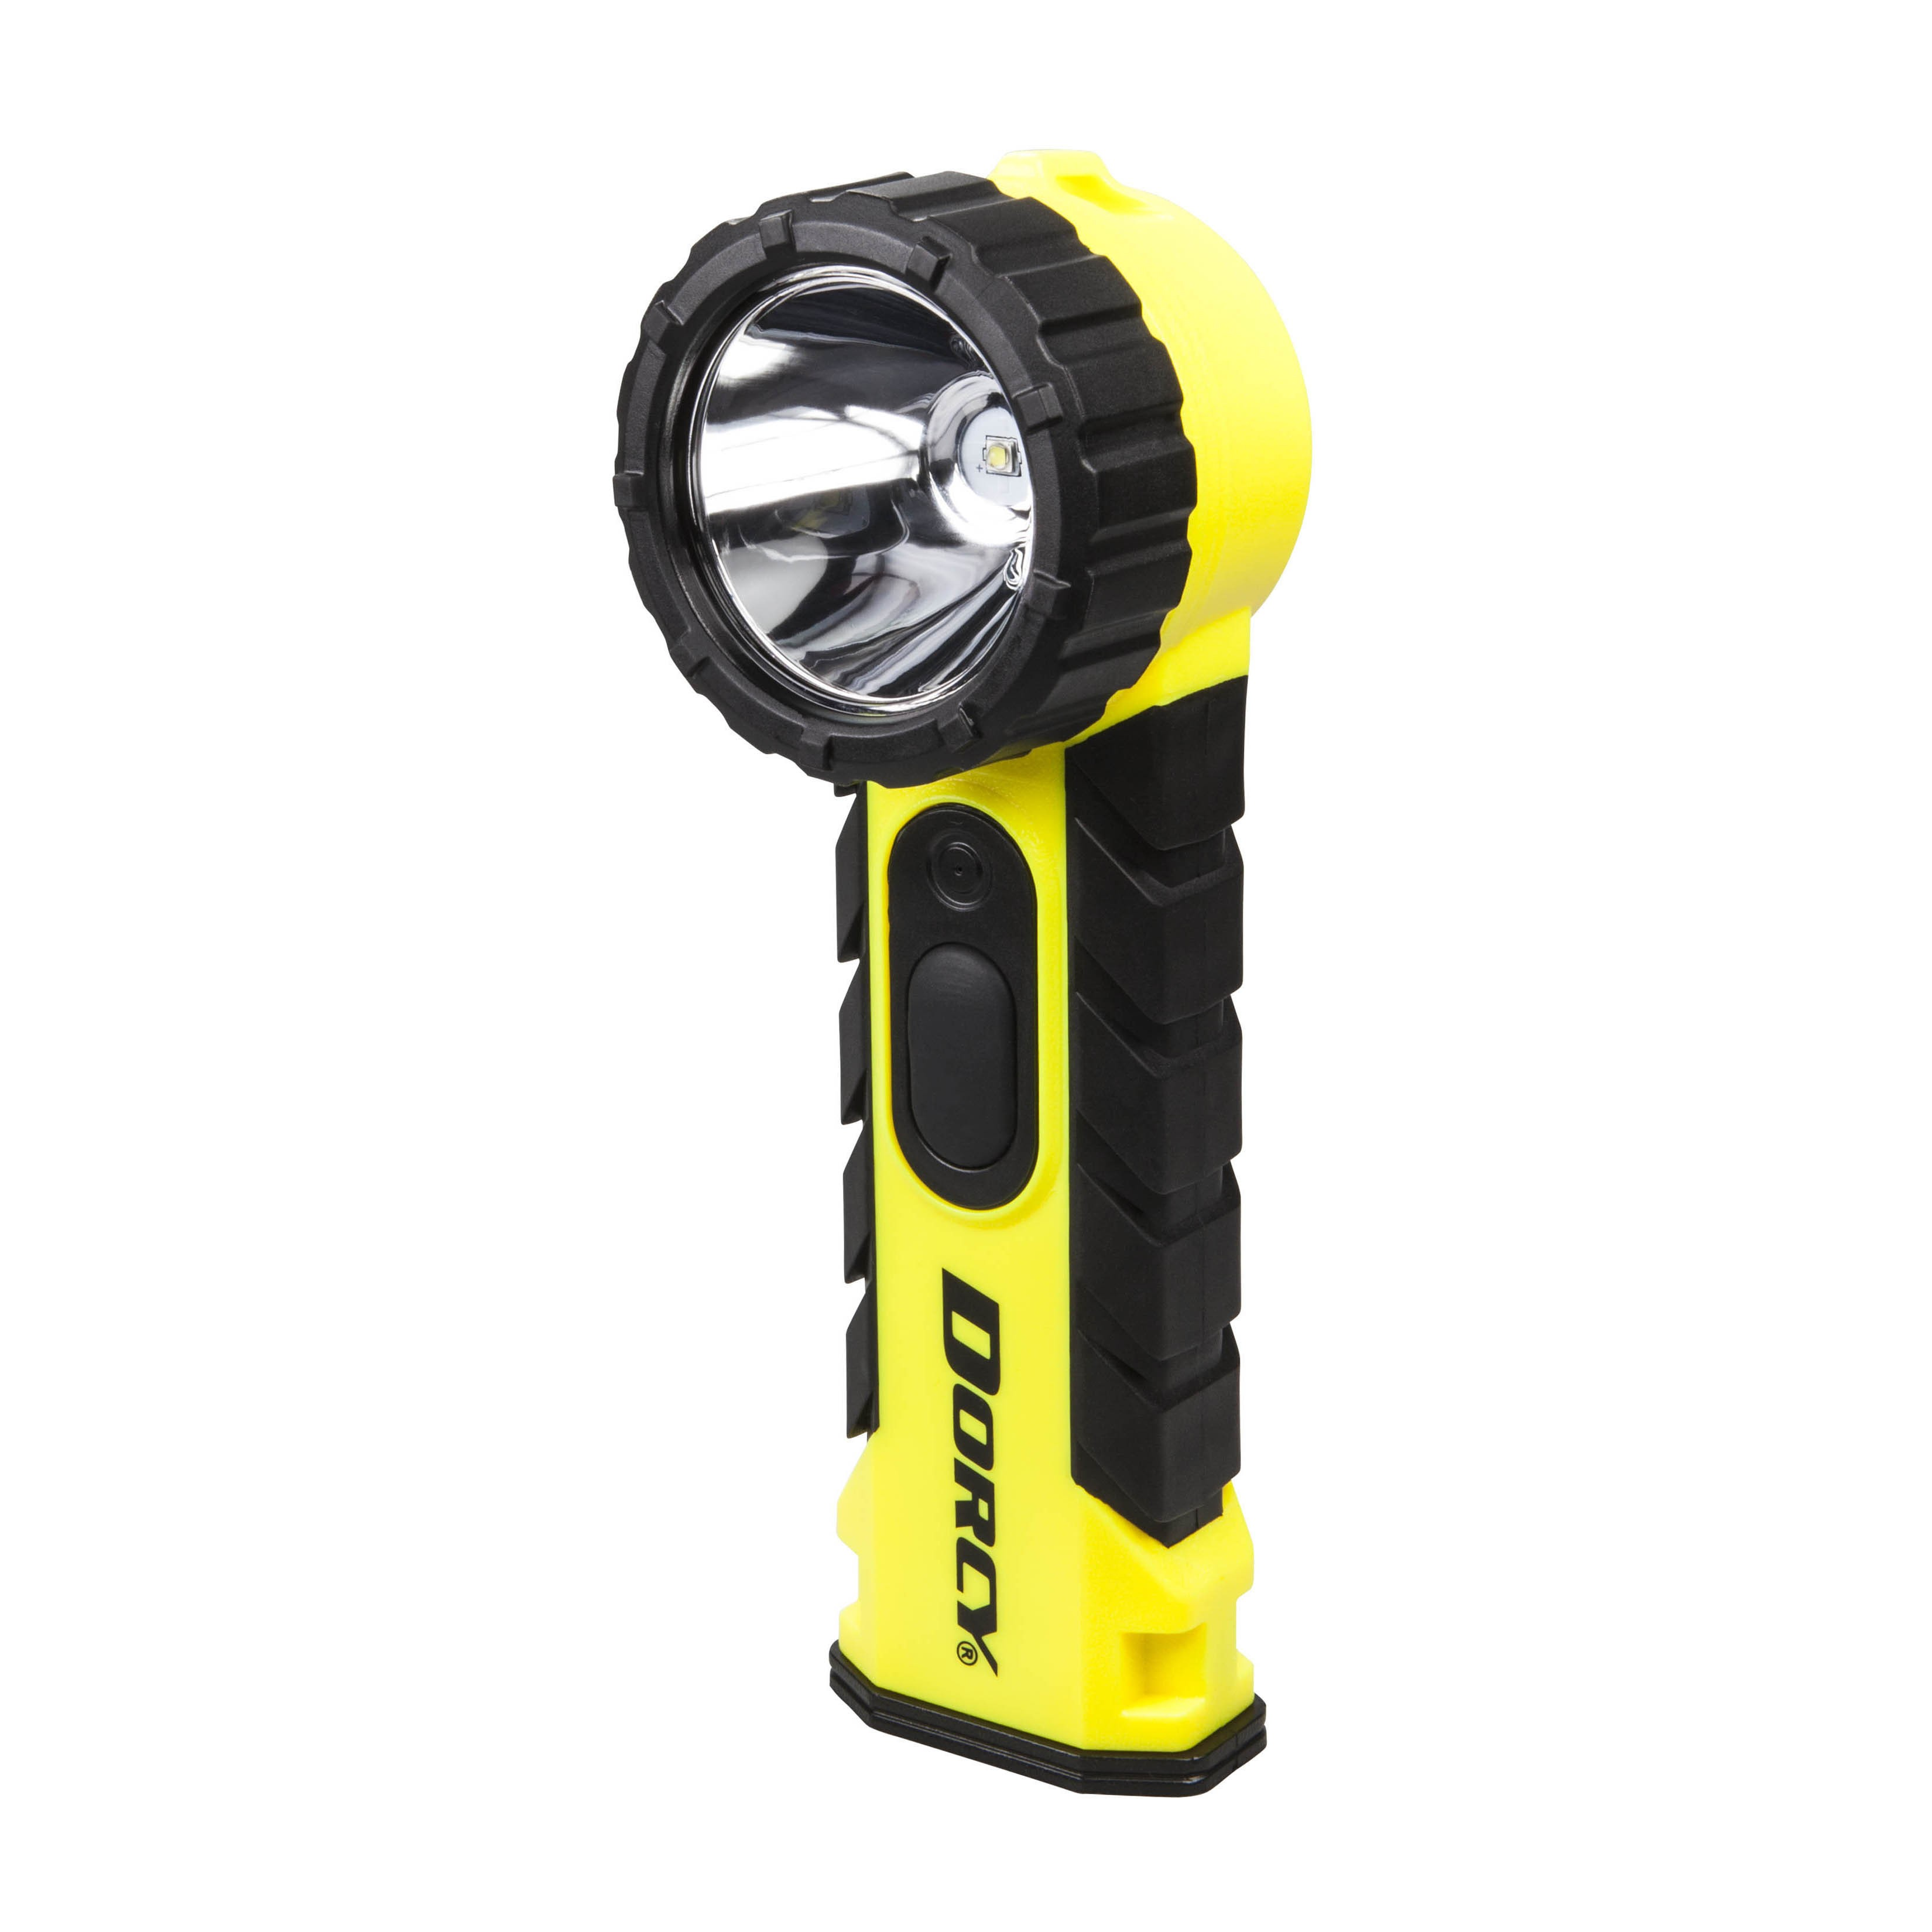 Intrinsically Safe 190 Lumen Flashlight